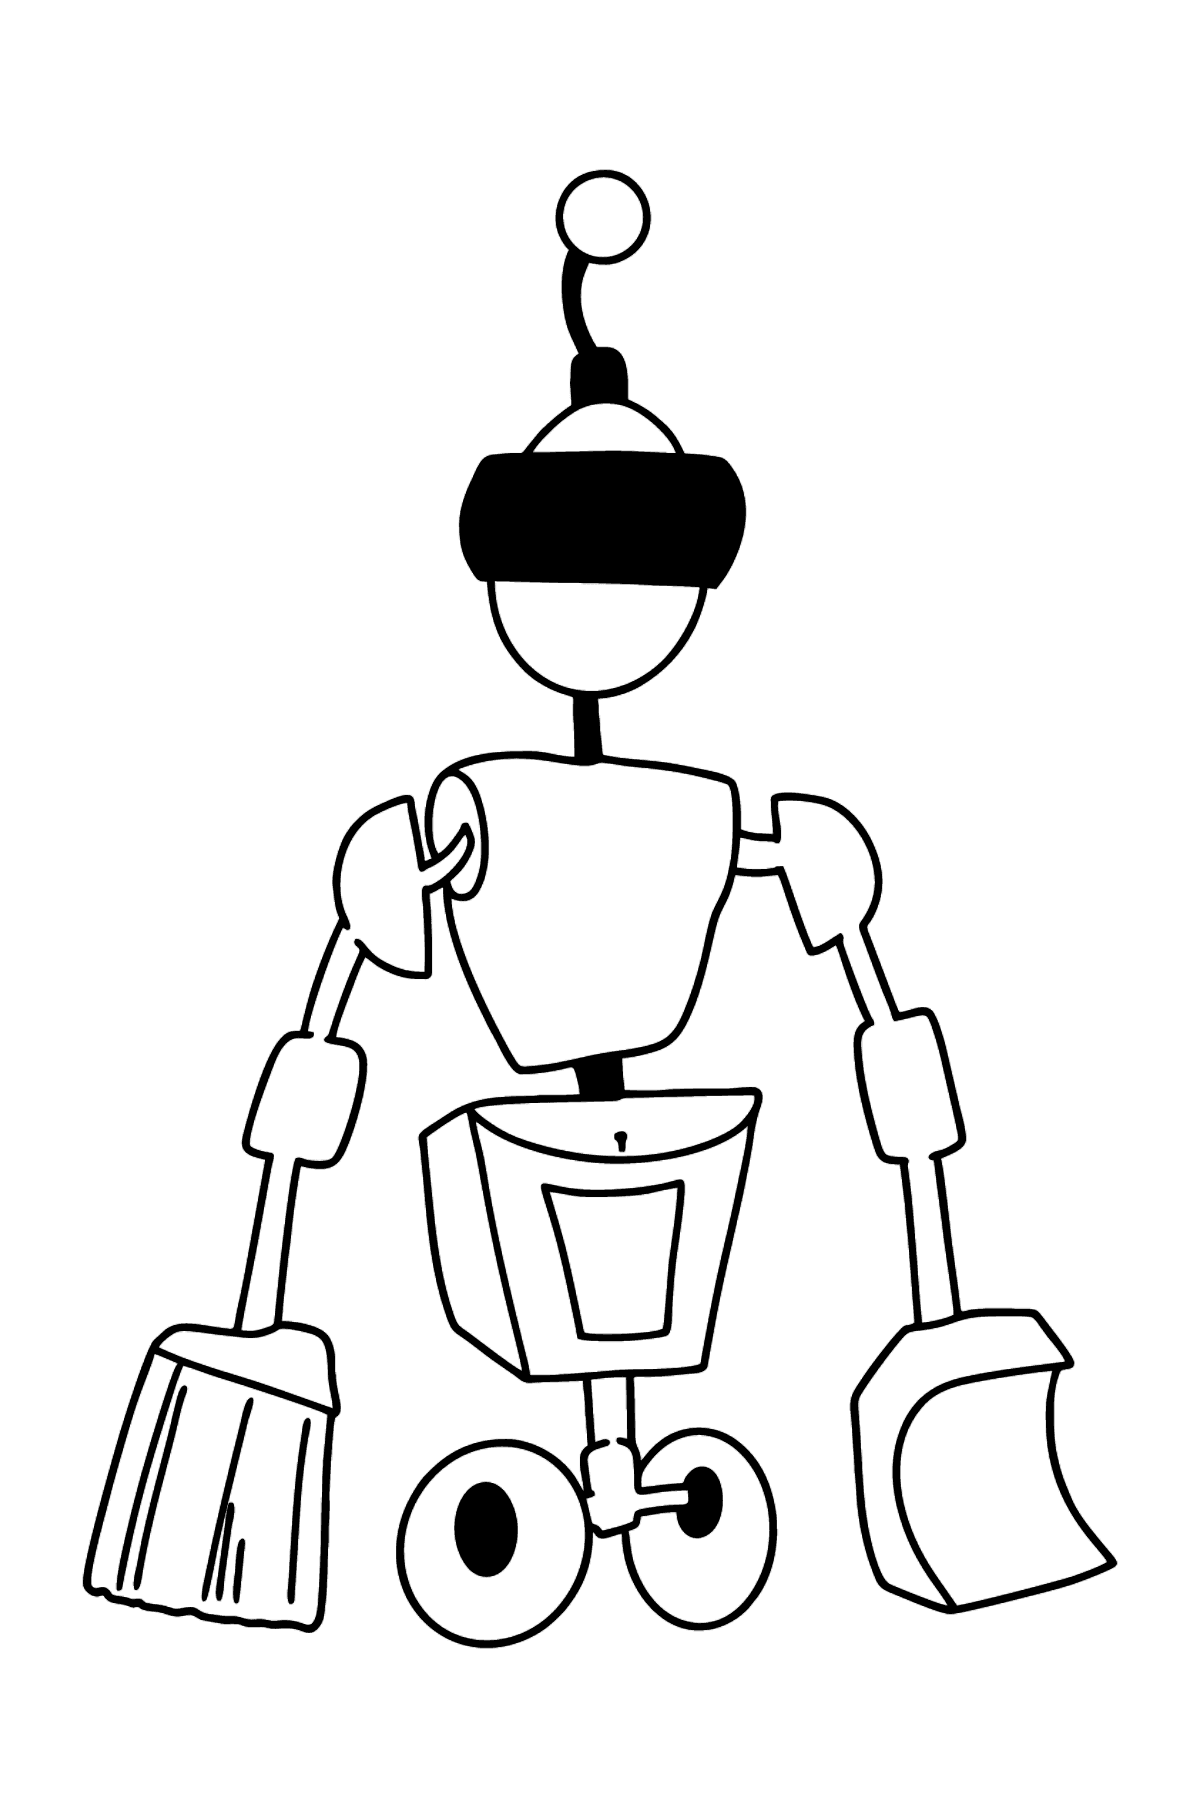 Cleaning Robot coloring page - Coloring Pages for Kids